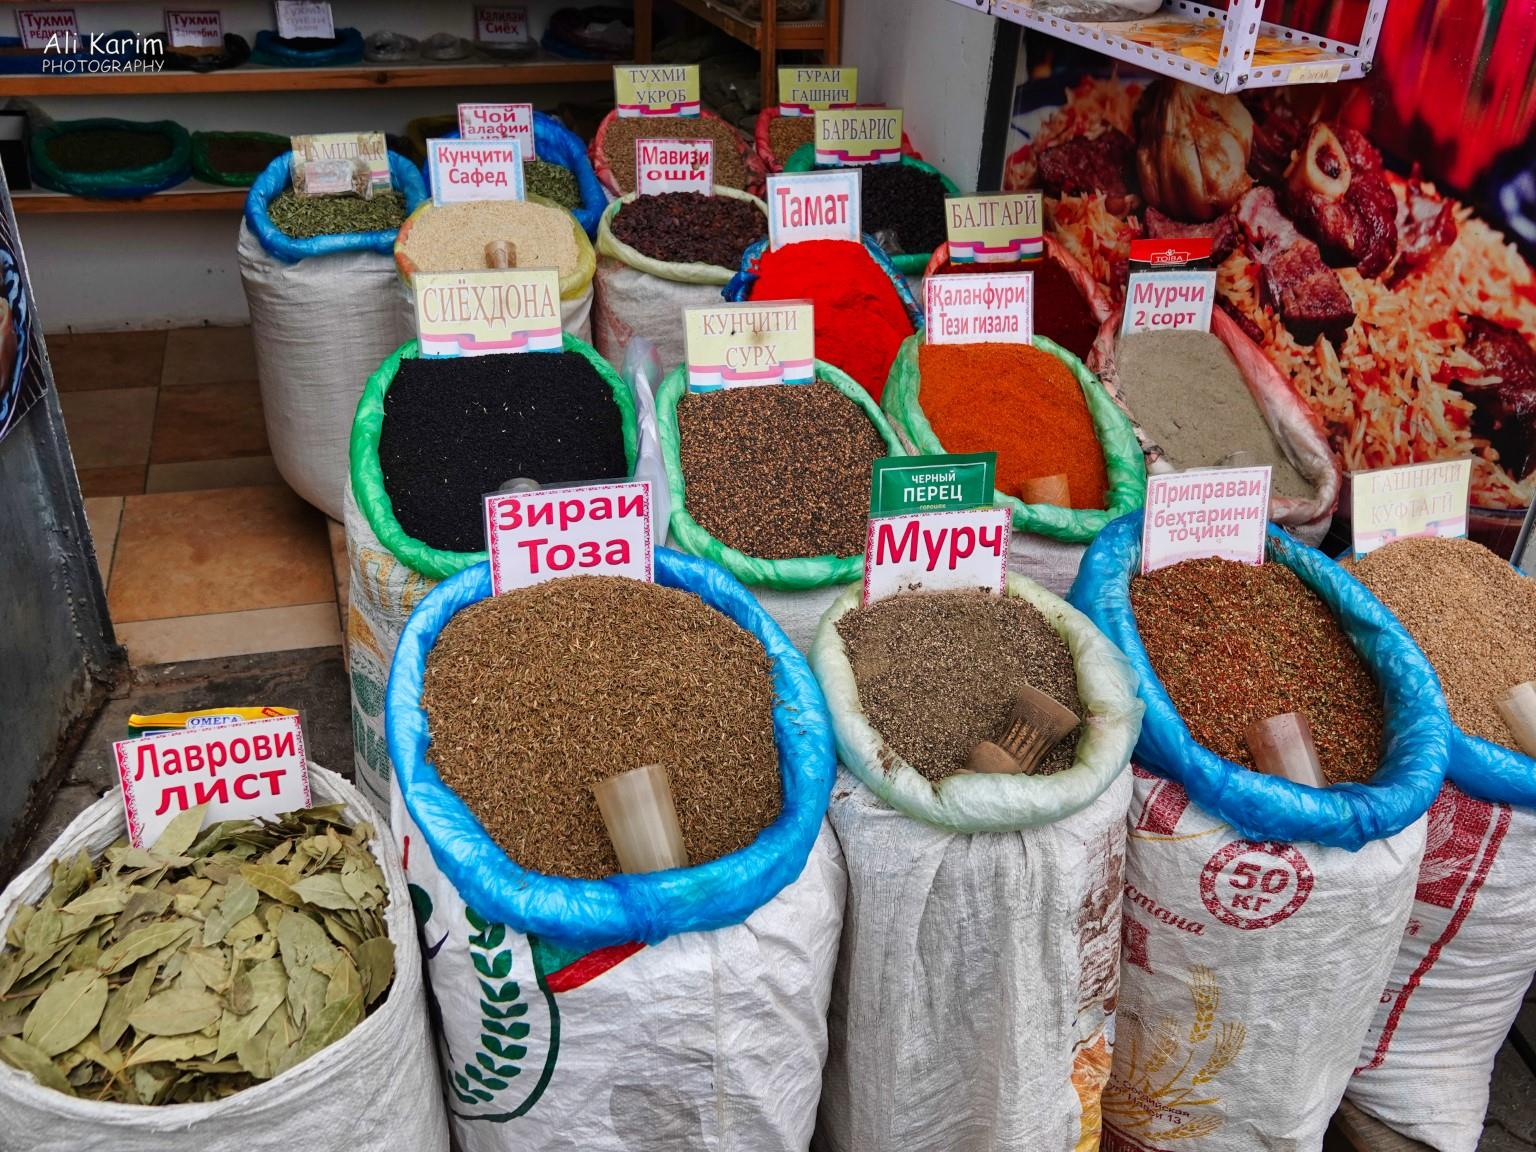 More Dushanbe, Tajikistan Spices for sale